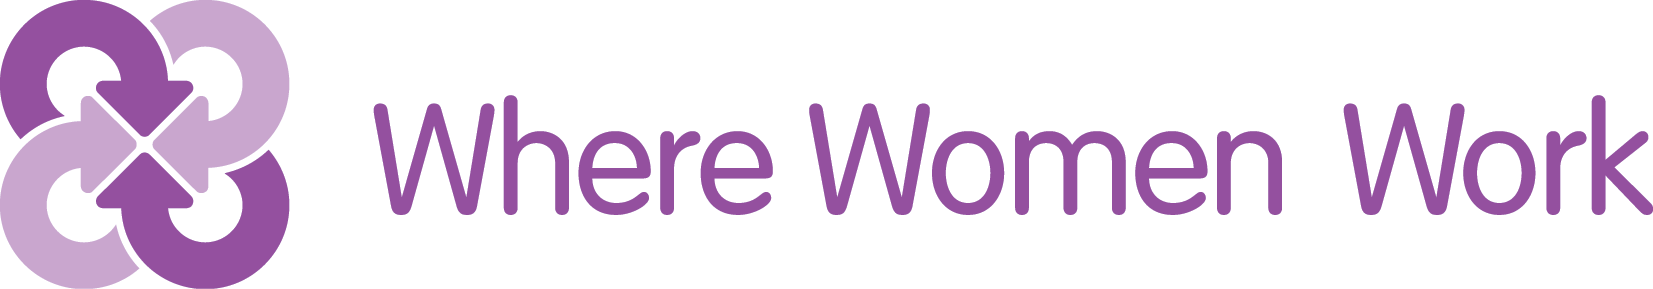 WhereWomenWork